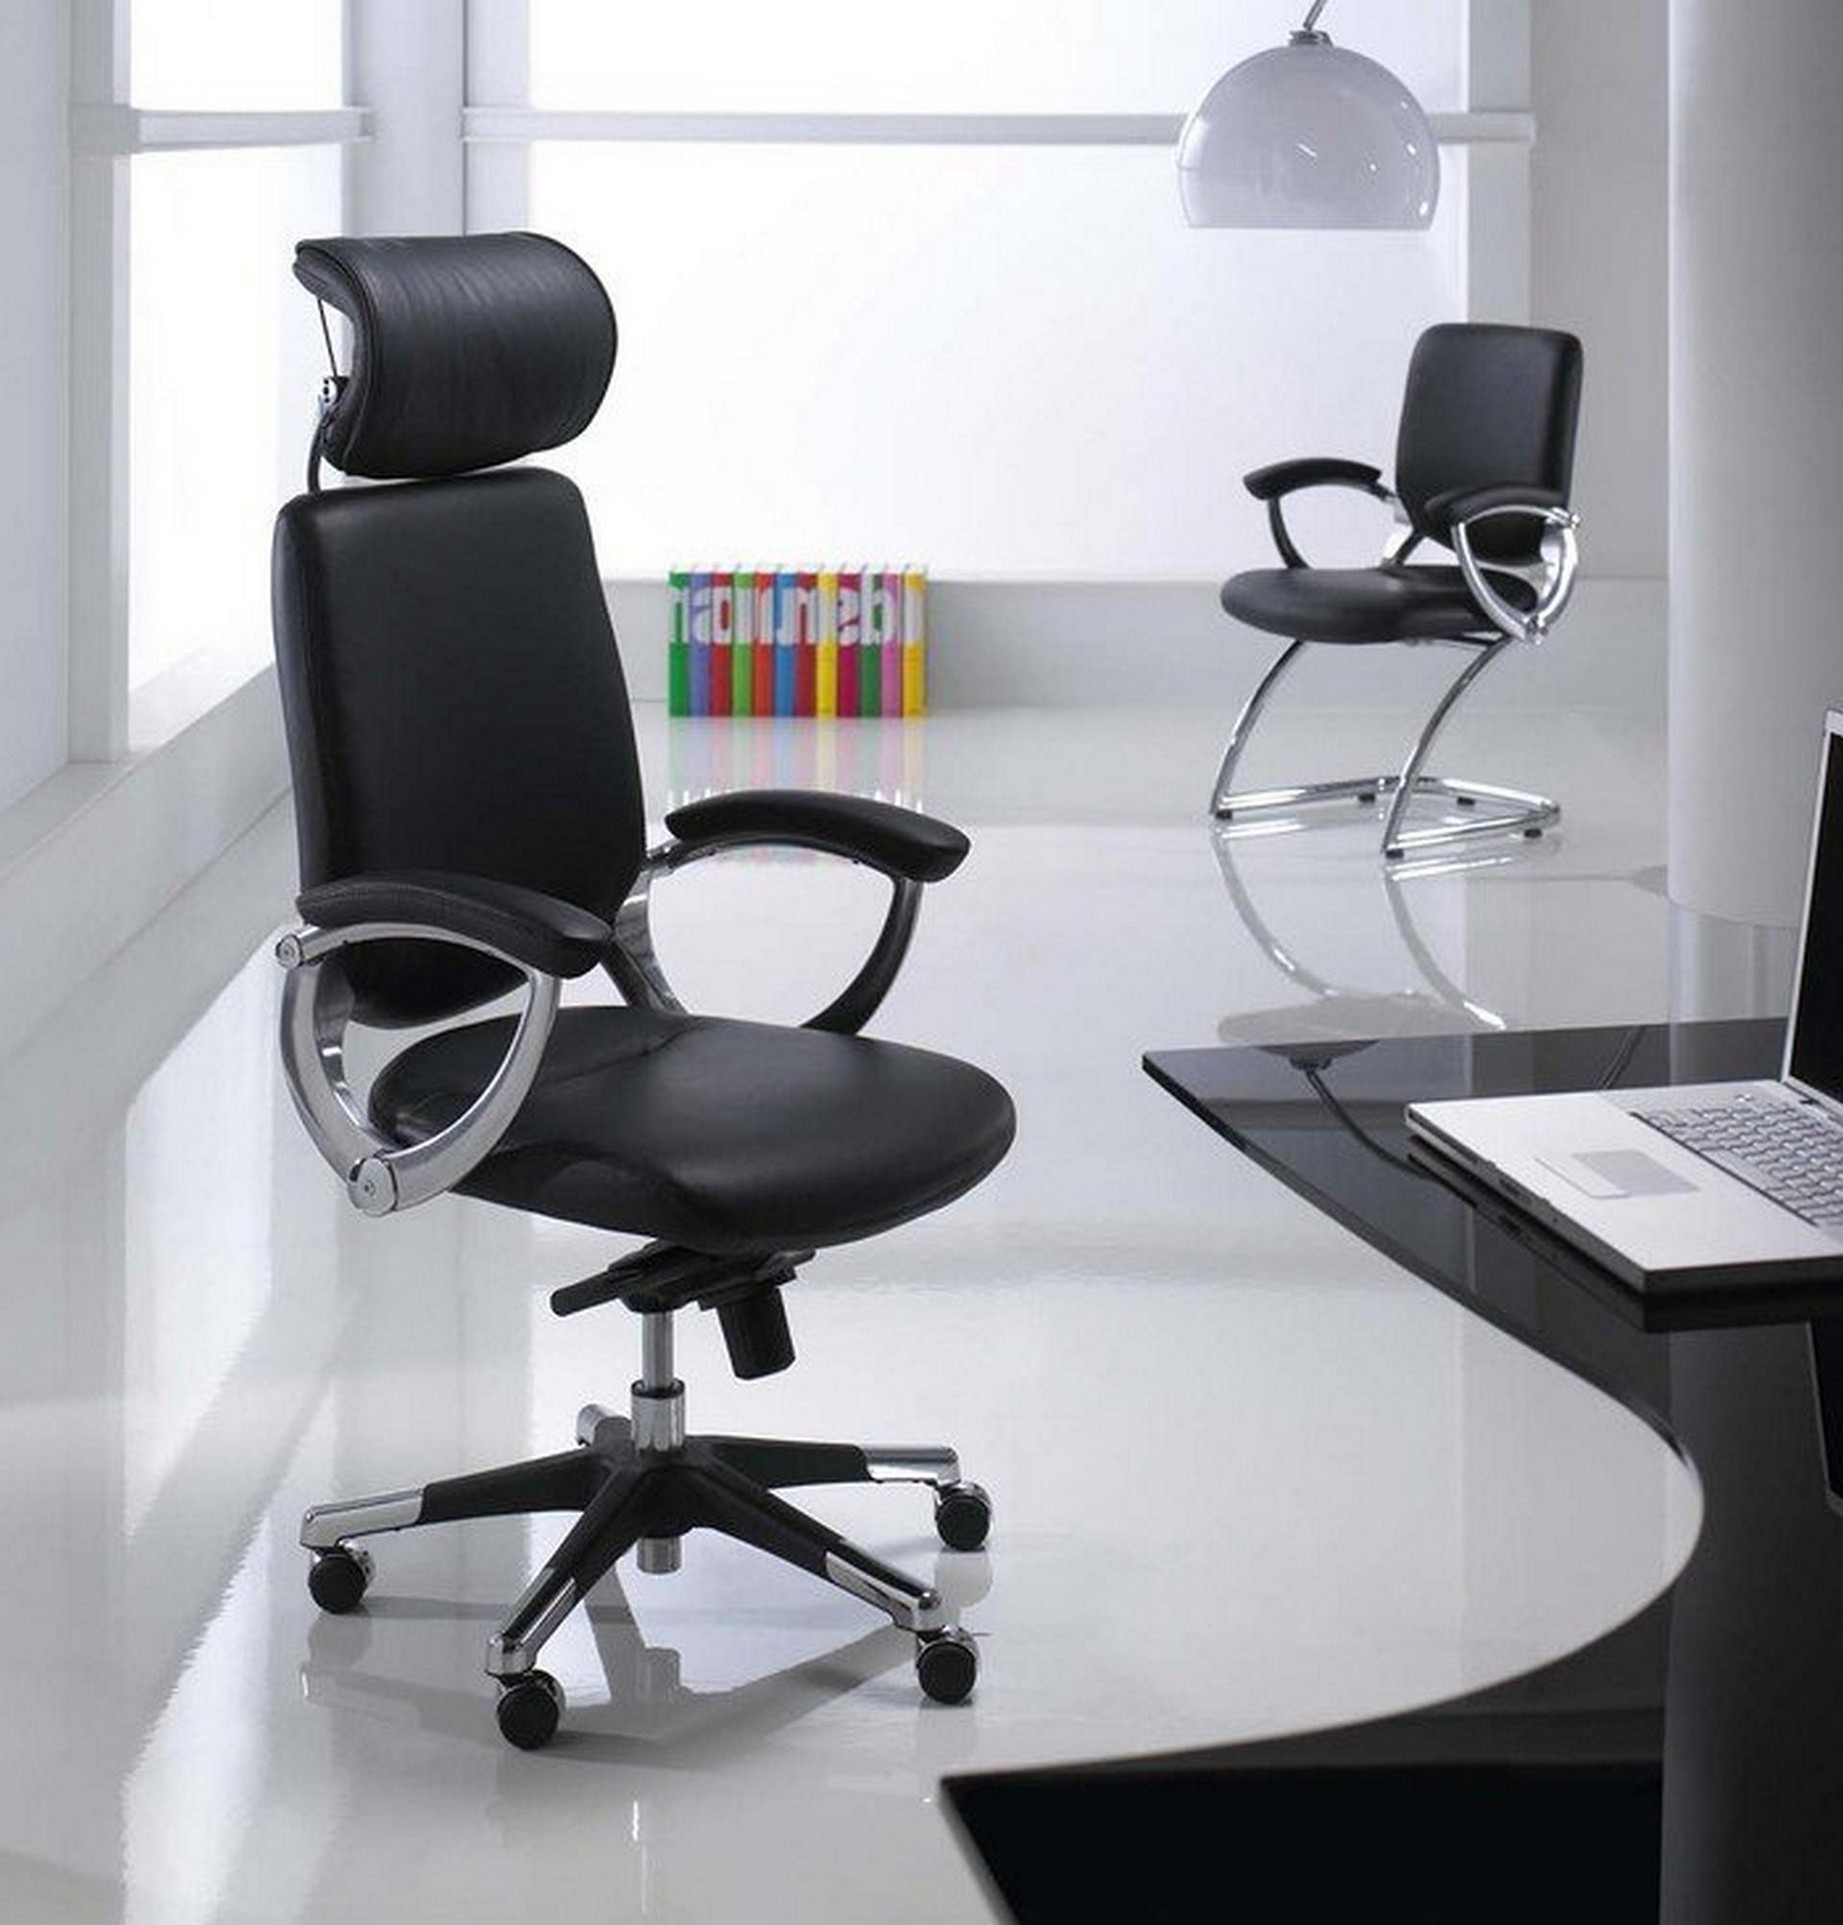 Working Chair 9 Different Ways To Make Your Office Chair More Comfortable